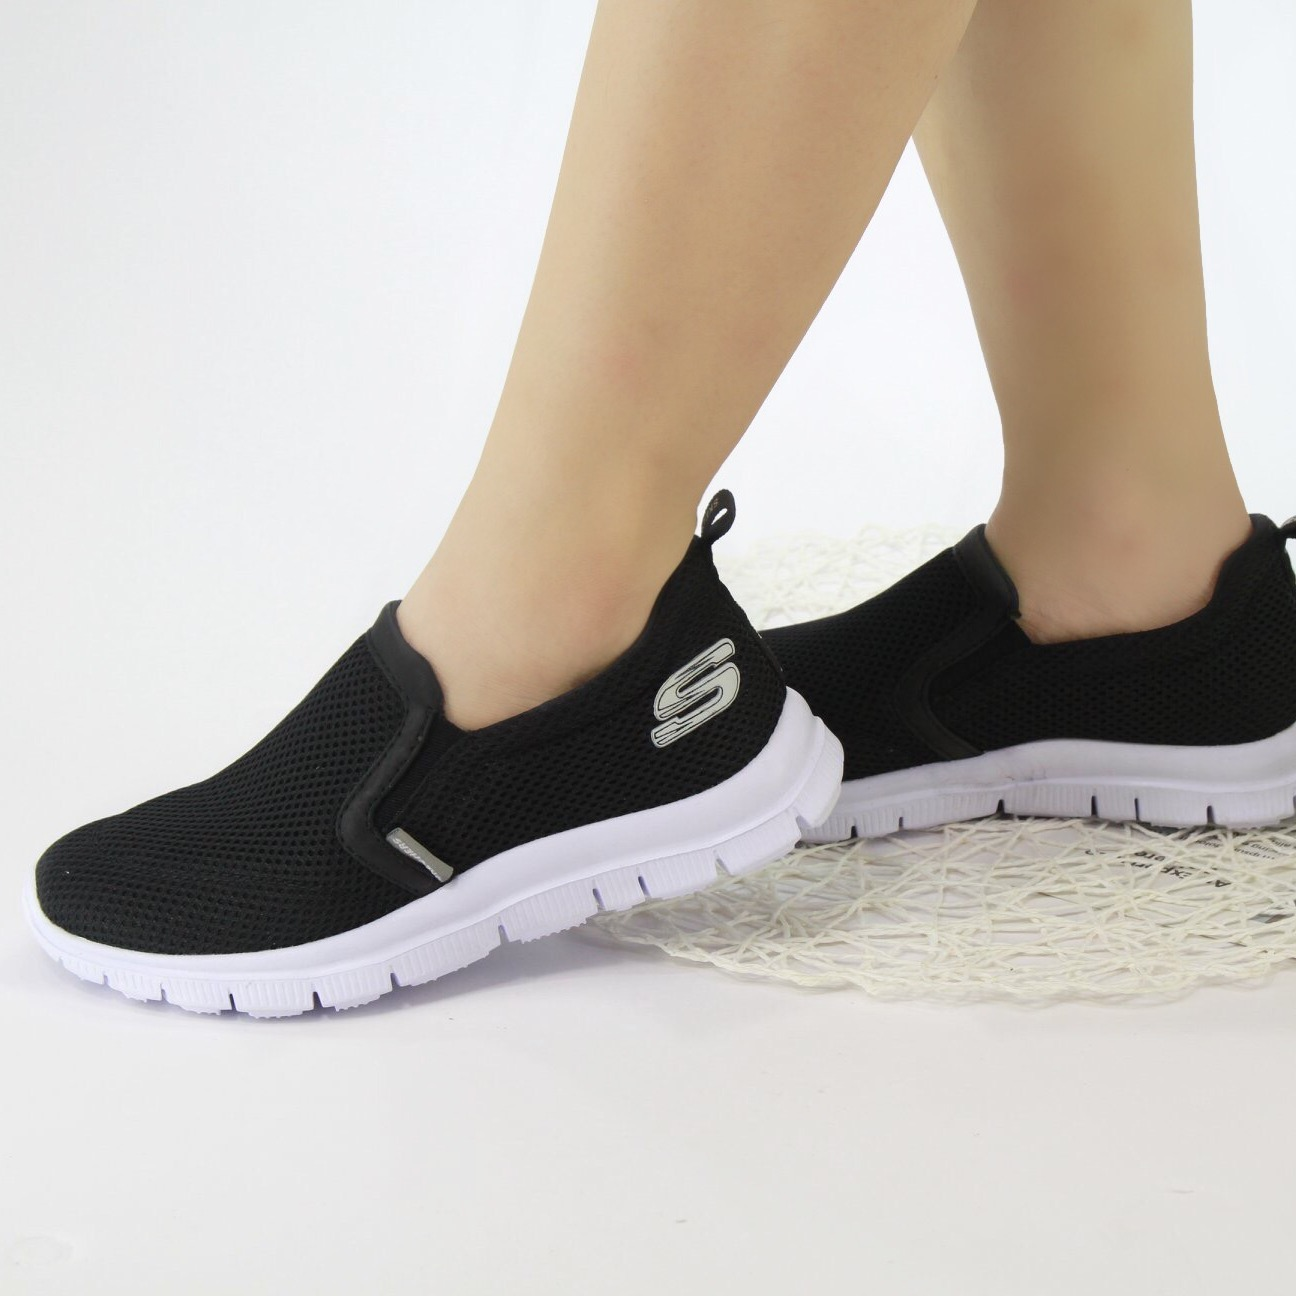 SLipon Skechers nữ